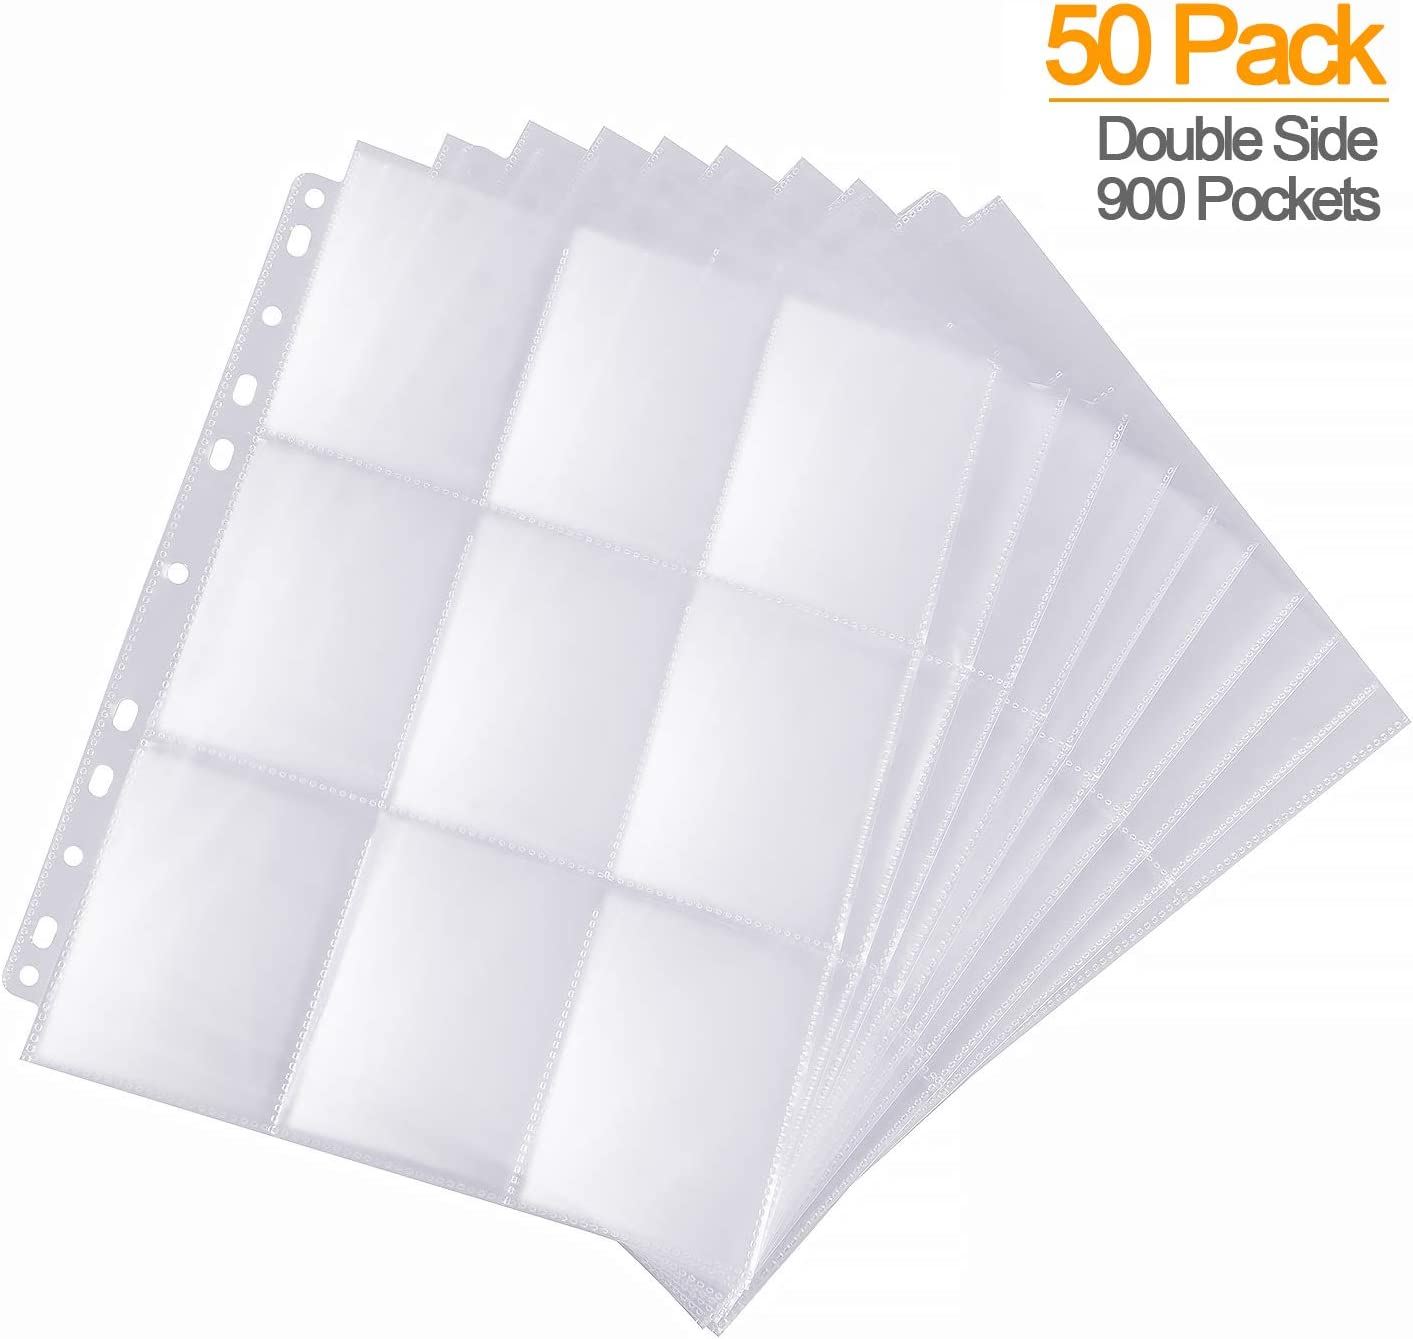 50 SLEEVE POCKET PAGE VARIETY PACK for COUPON BINDER ORGANIZER or BASEBALL CARDS